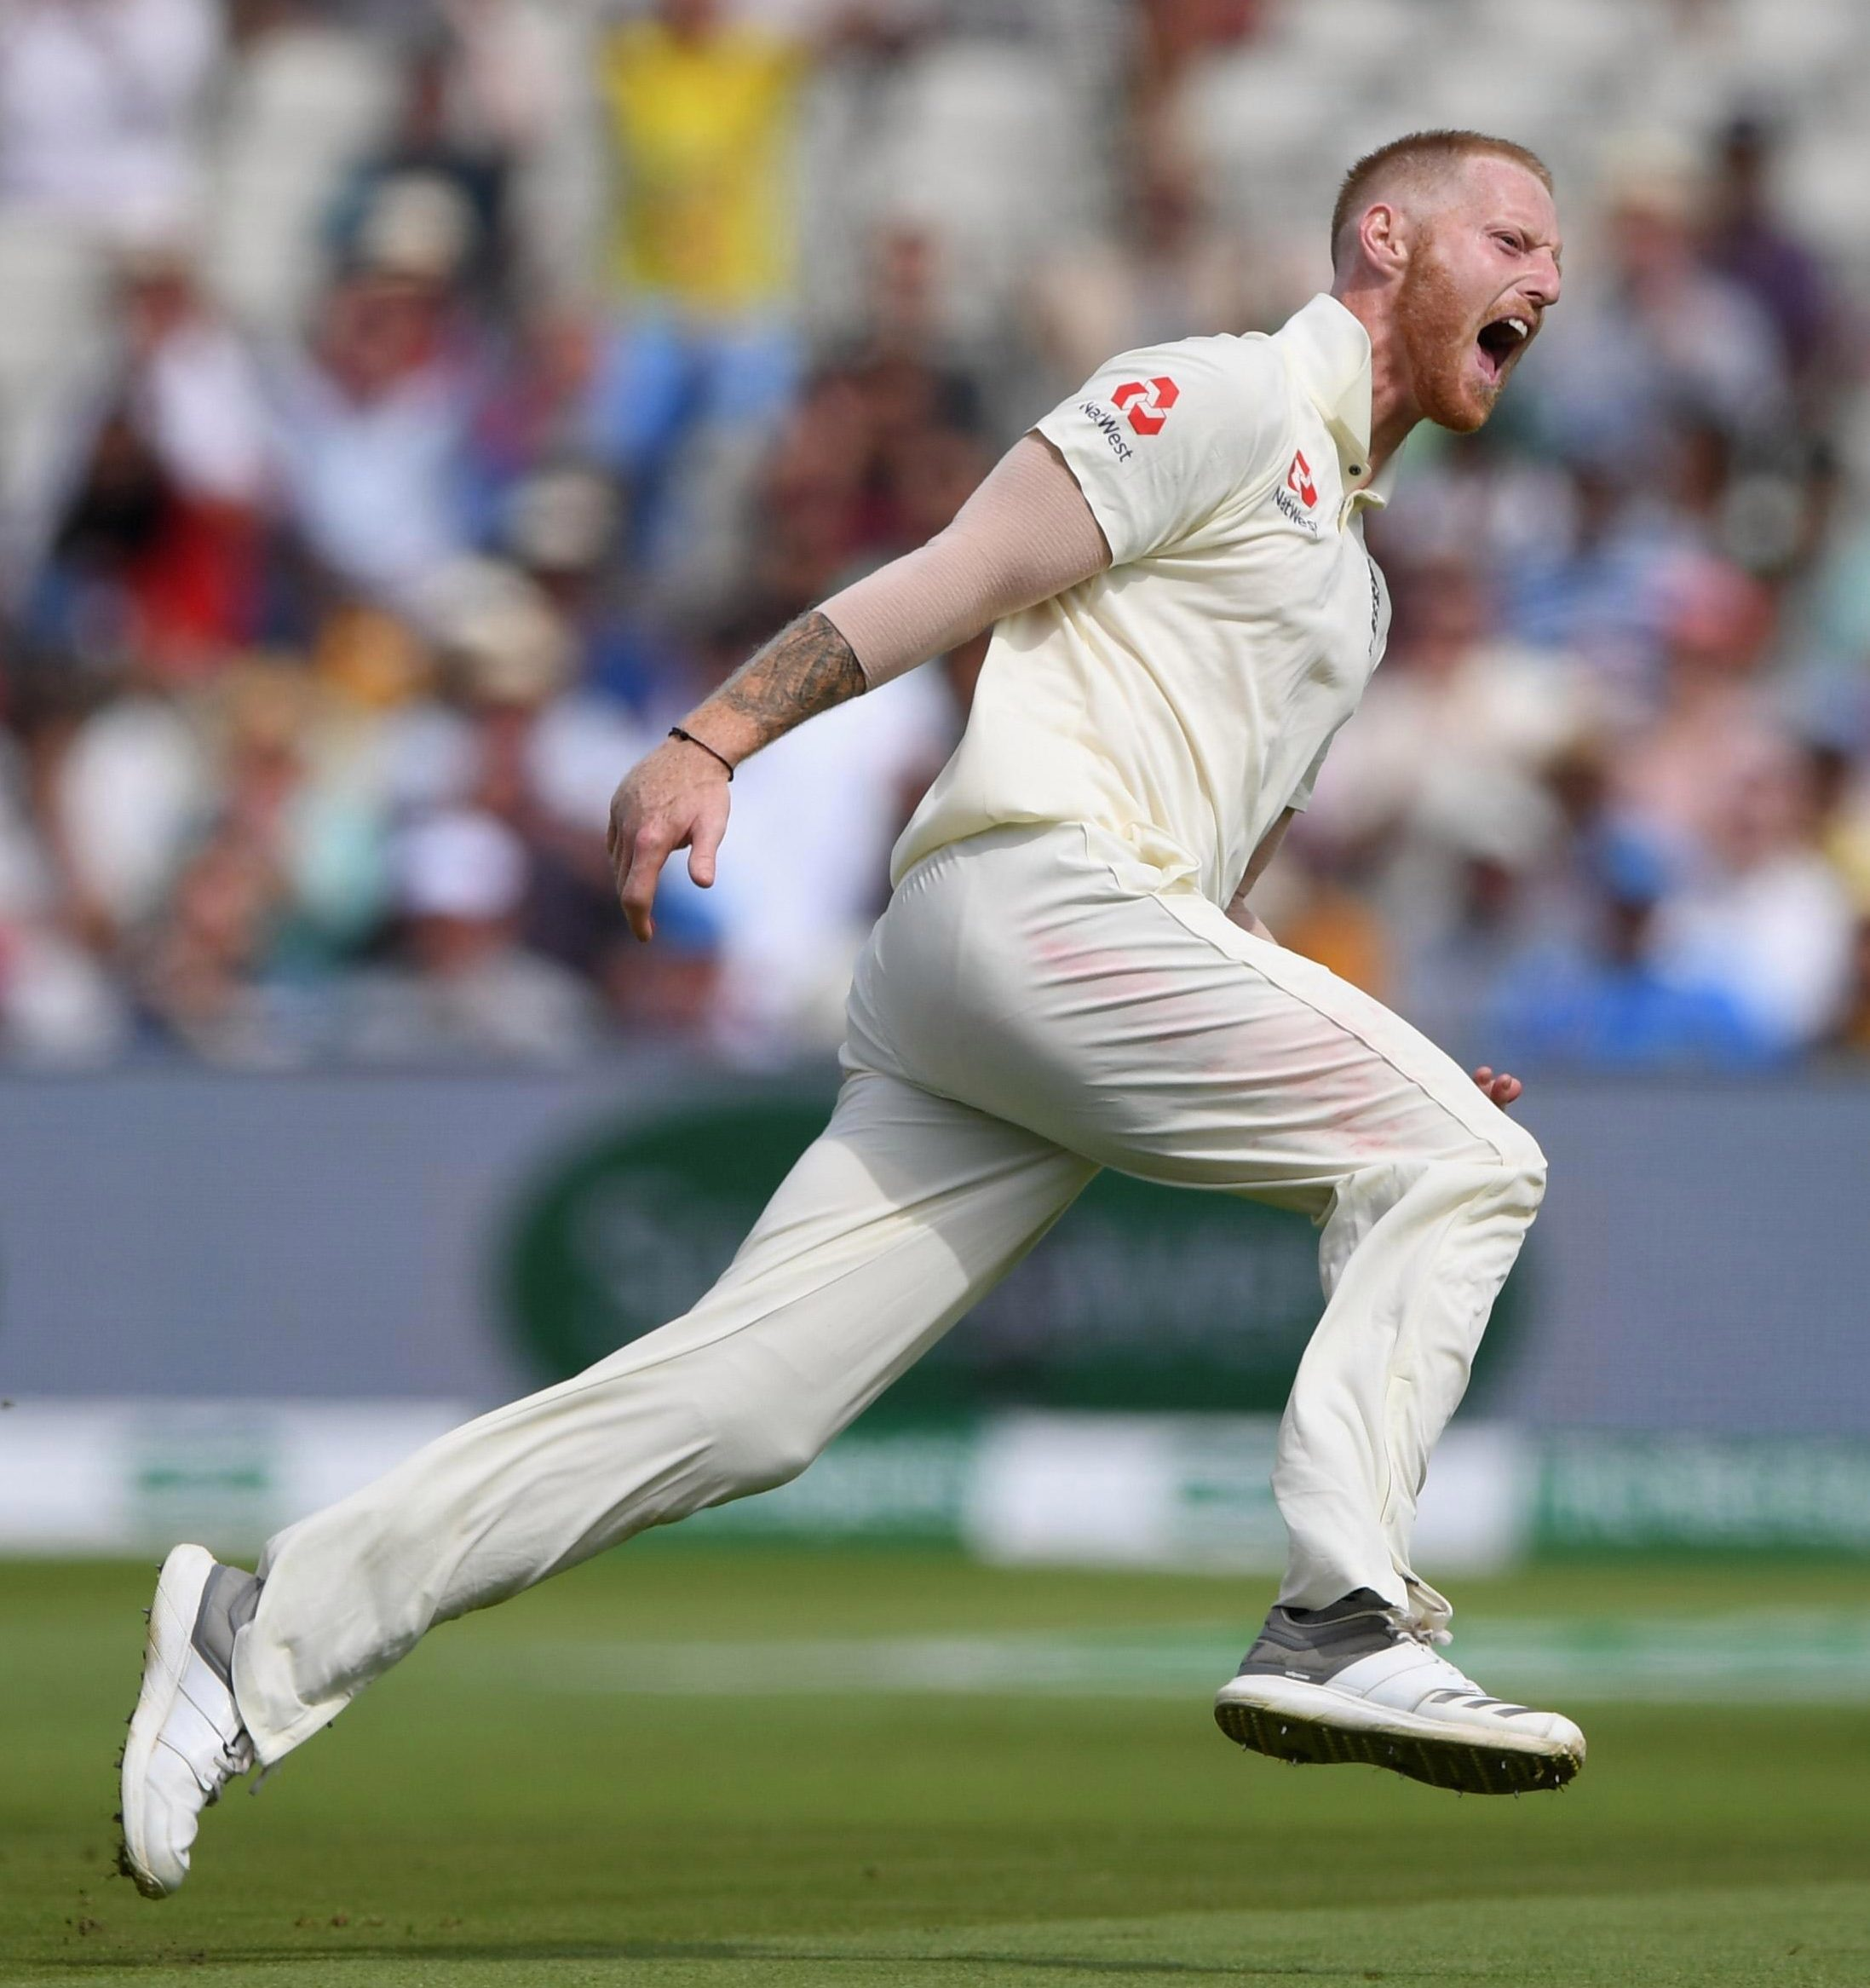 Ben Stokes could yet roar back for England in the Third Test - if he is cleared